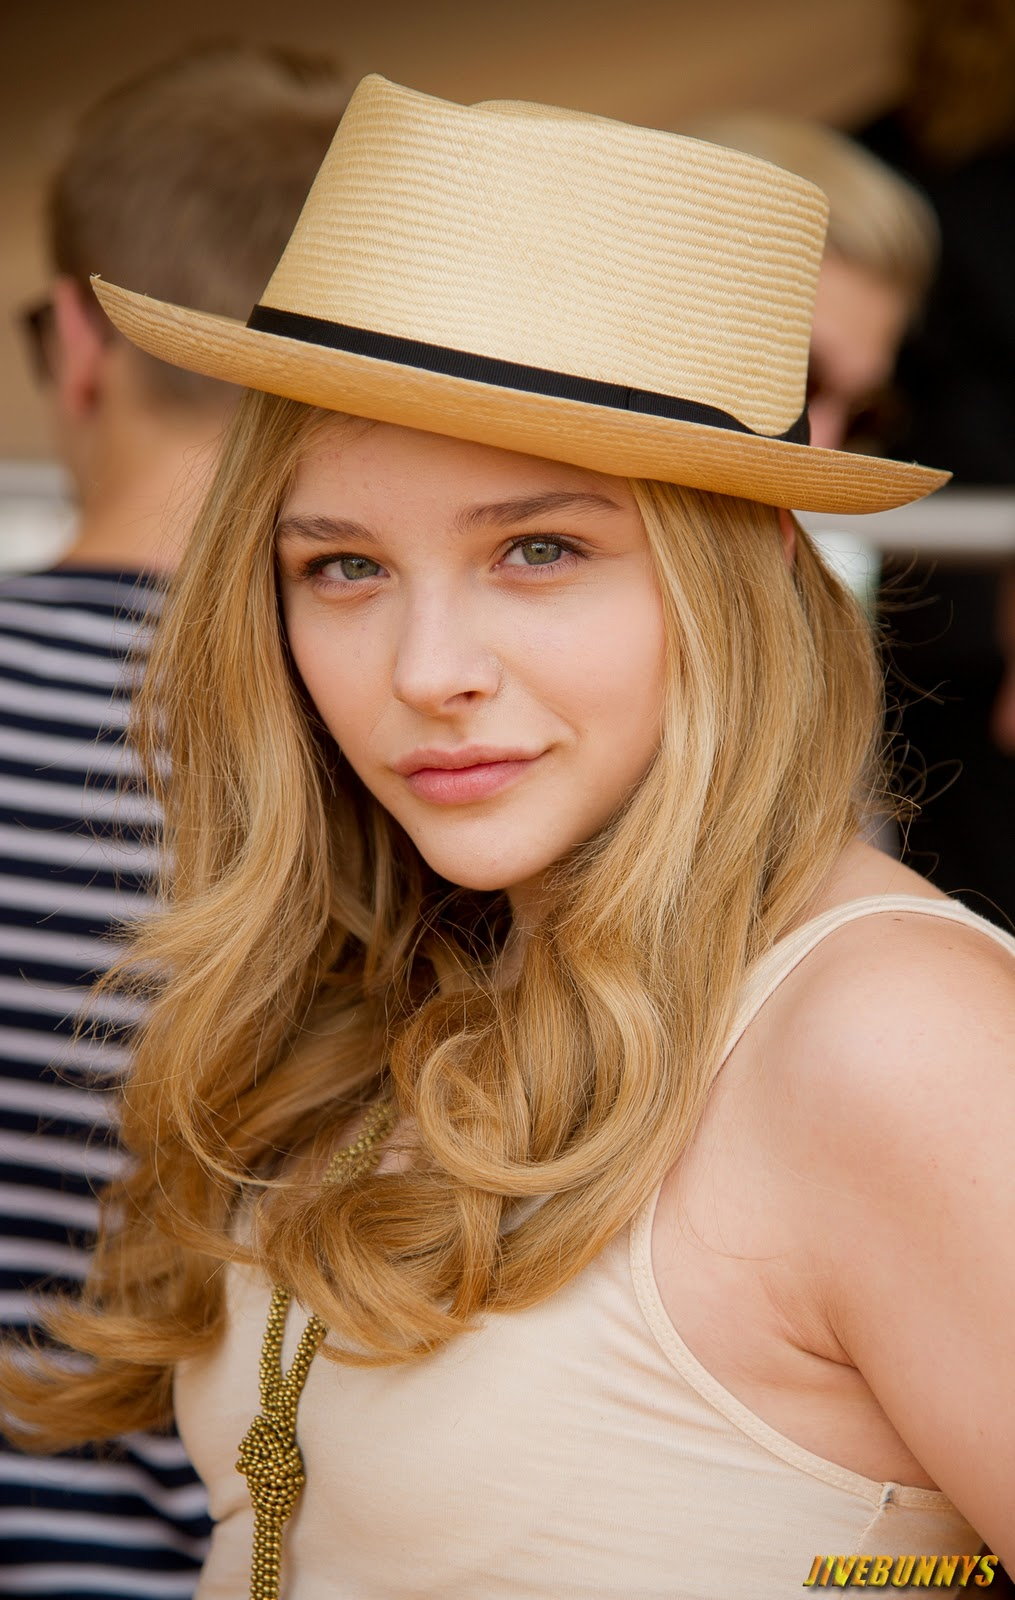 Chloe Grace Moretz Naked Photos